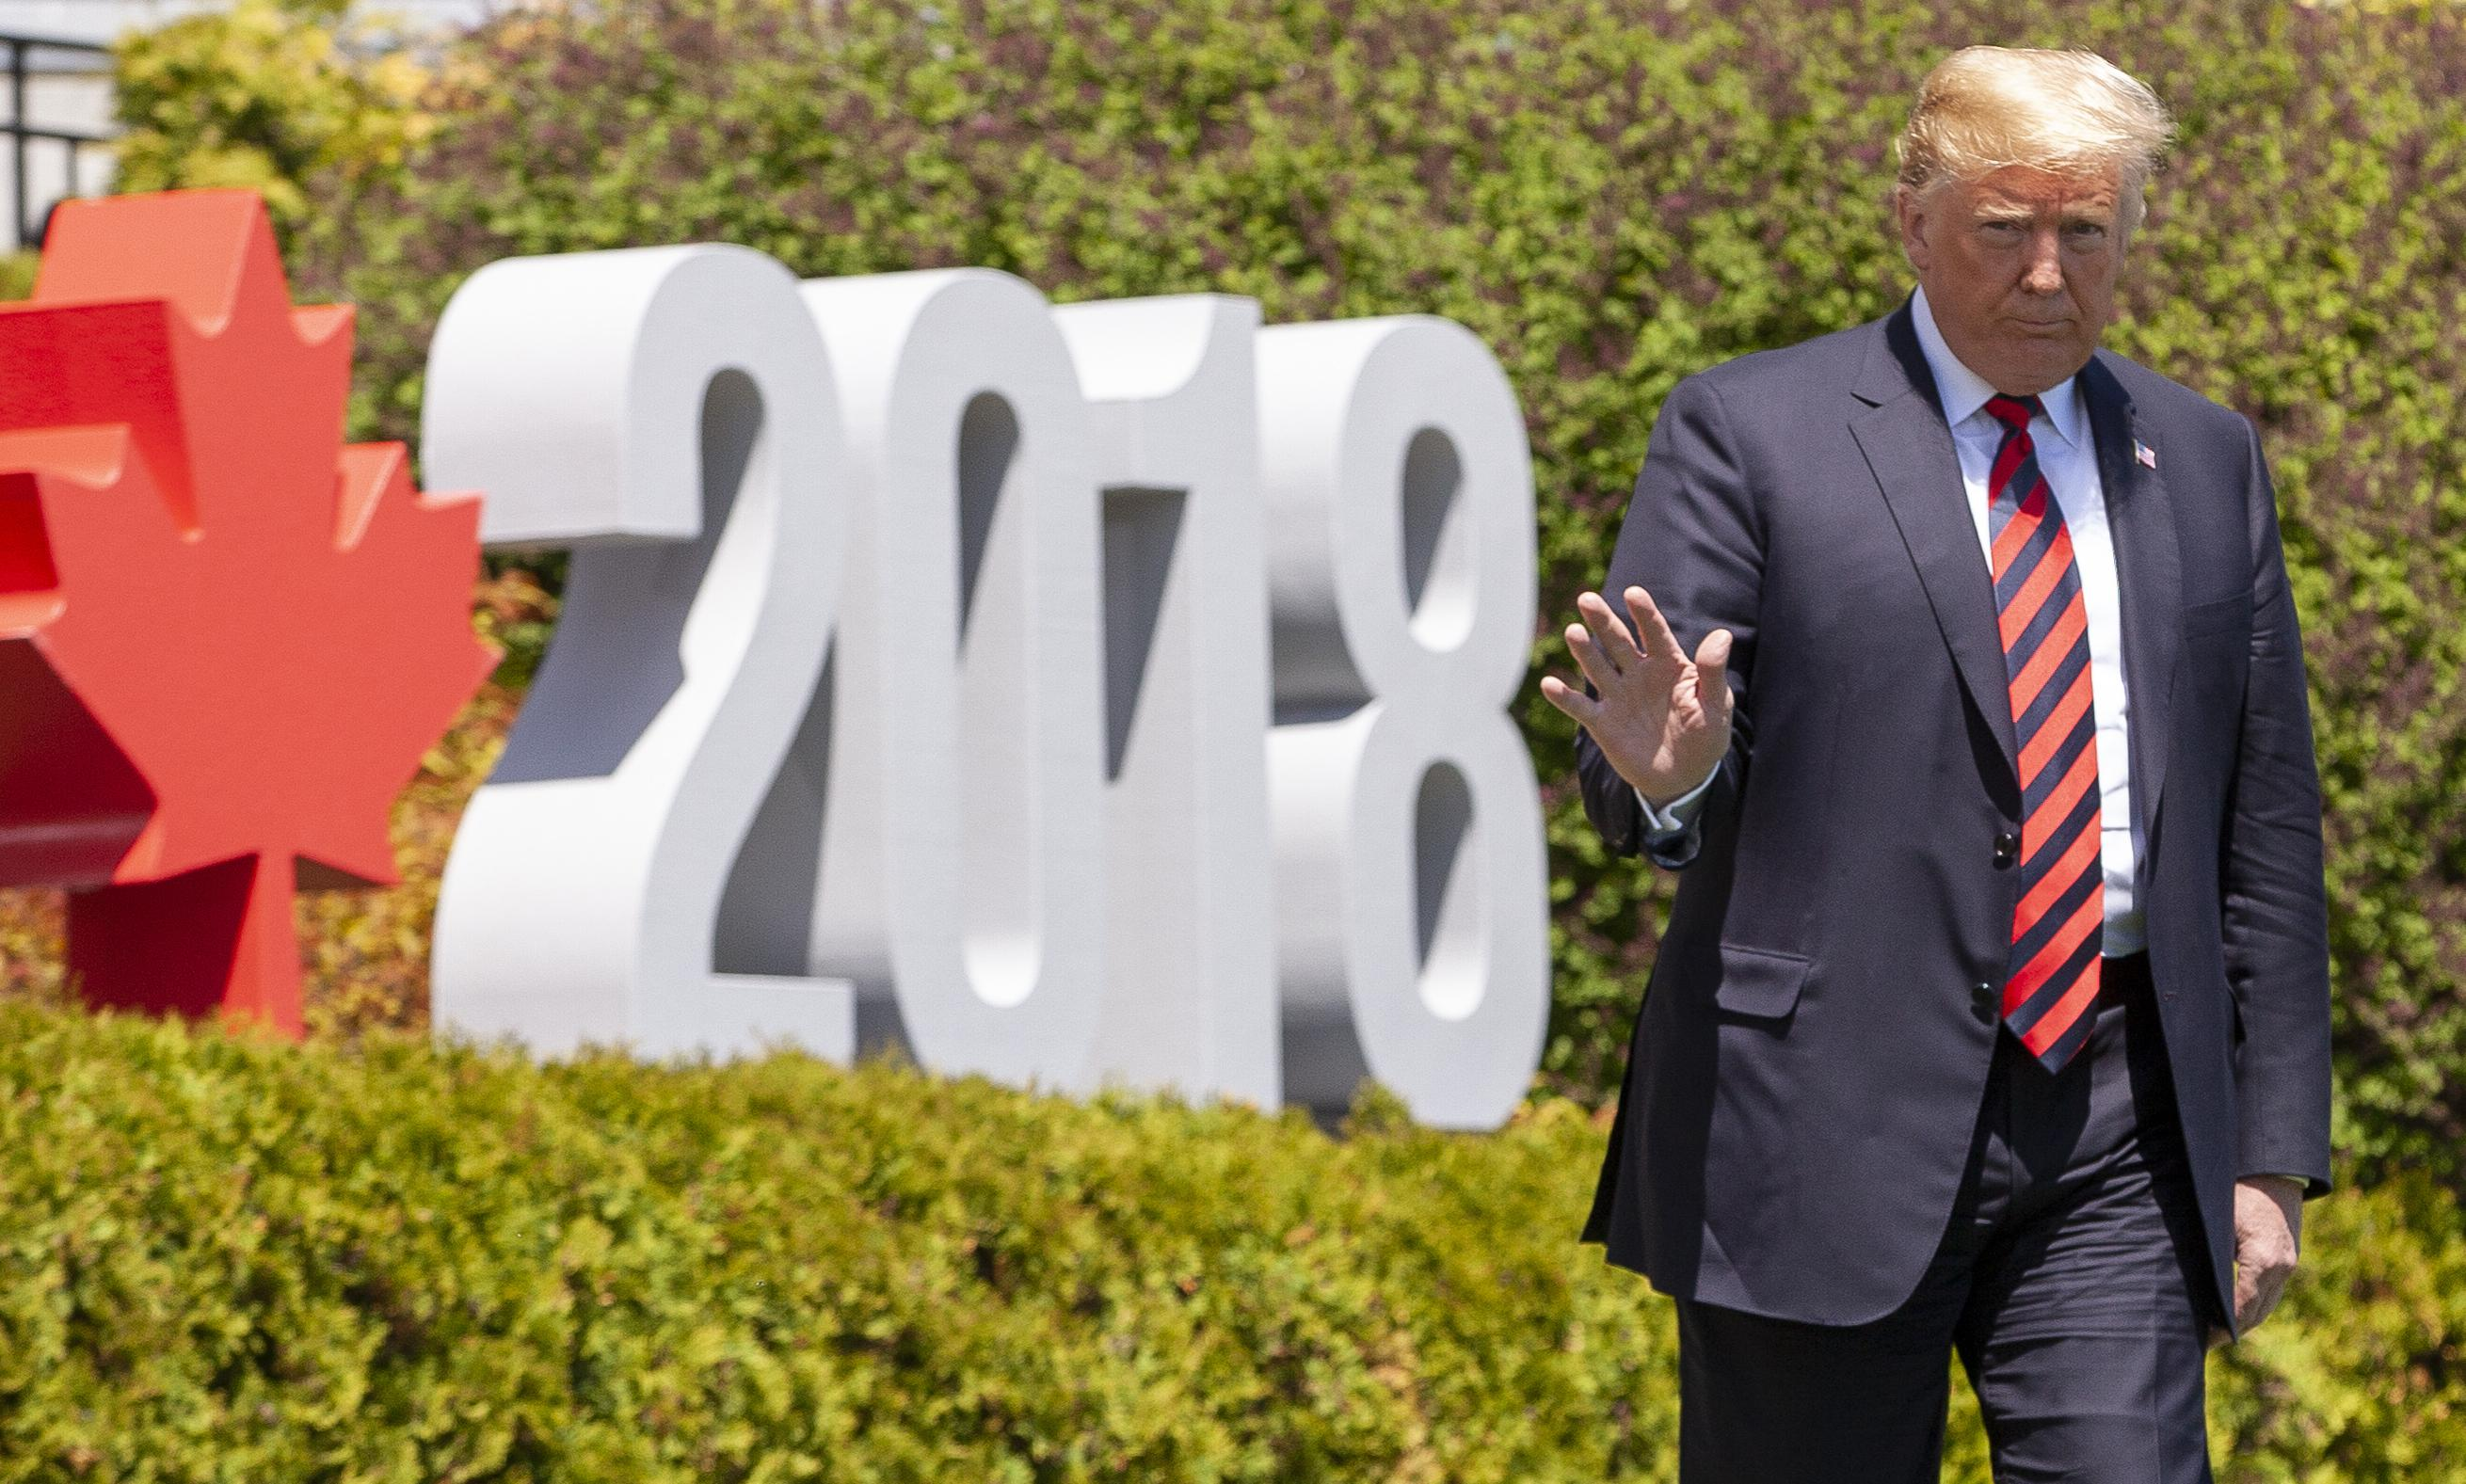 Donald Trump walks by a sign that says 2018 with a red maple leaf.